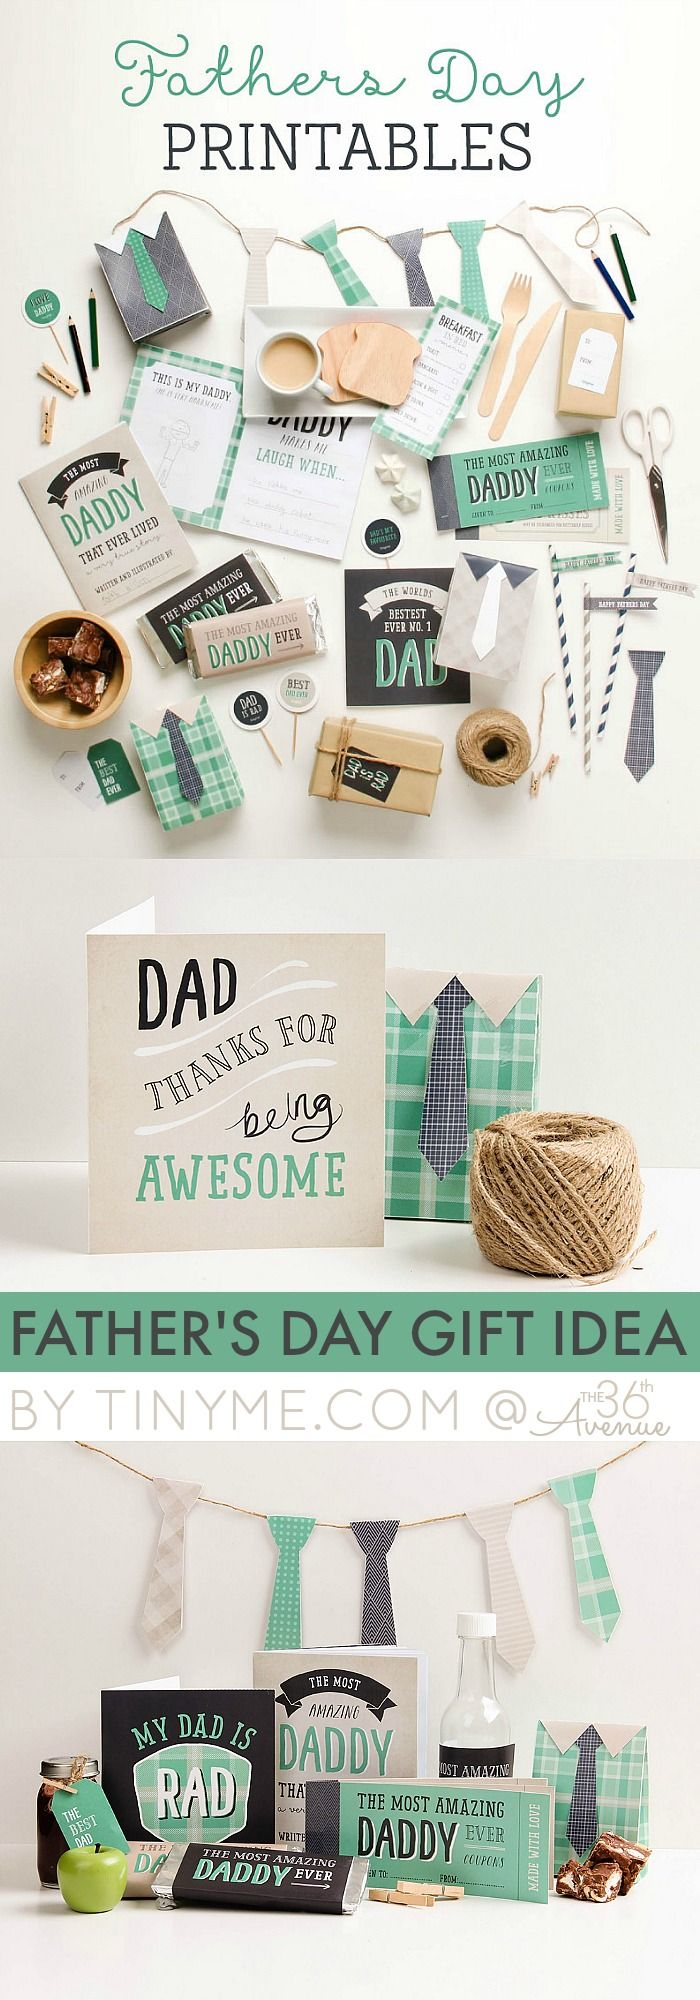 Father's Day Free Printables and Gift Idea! Cute way to decorate for fathers day.